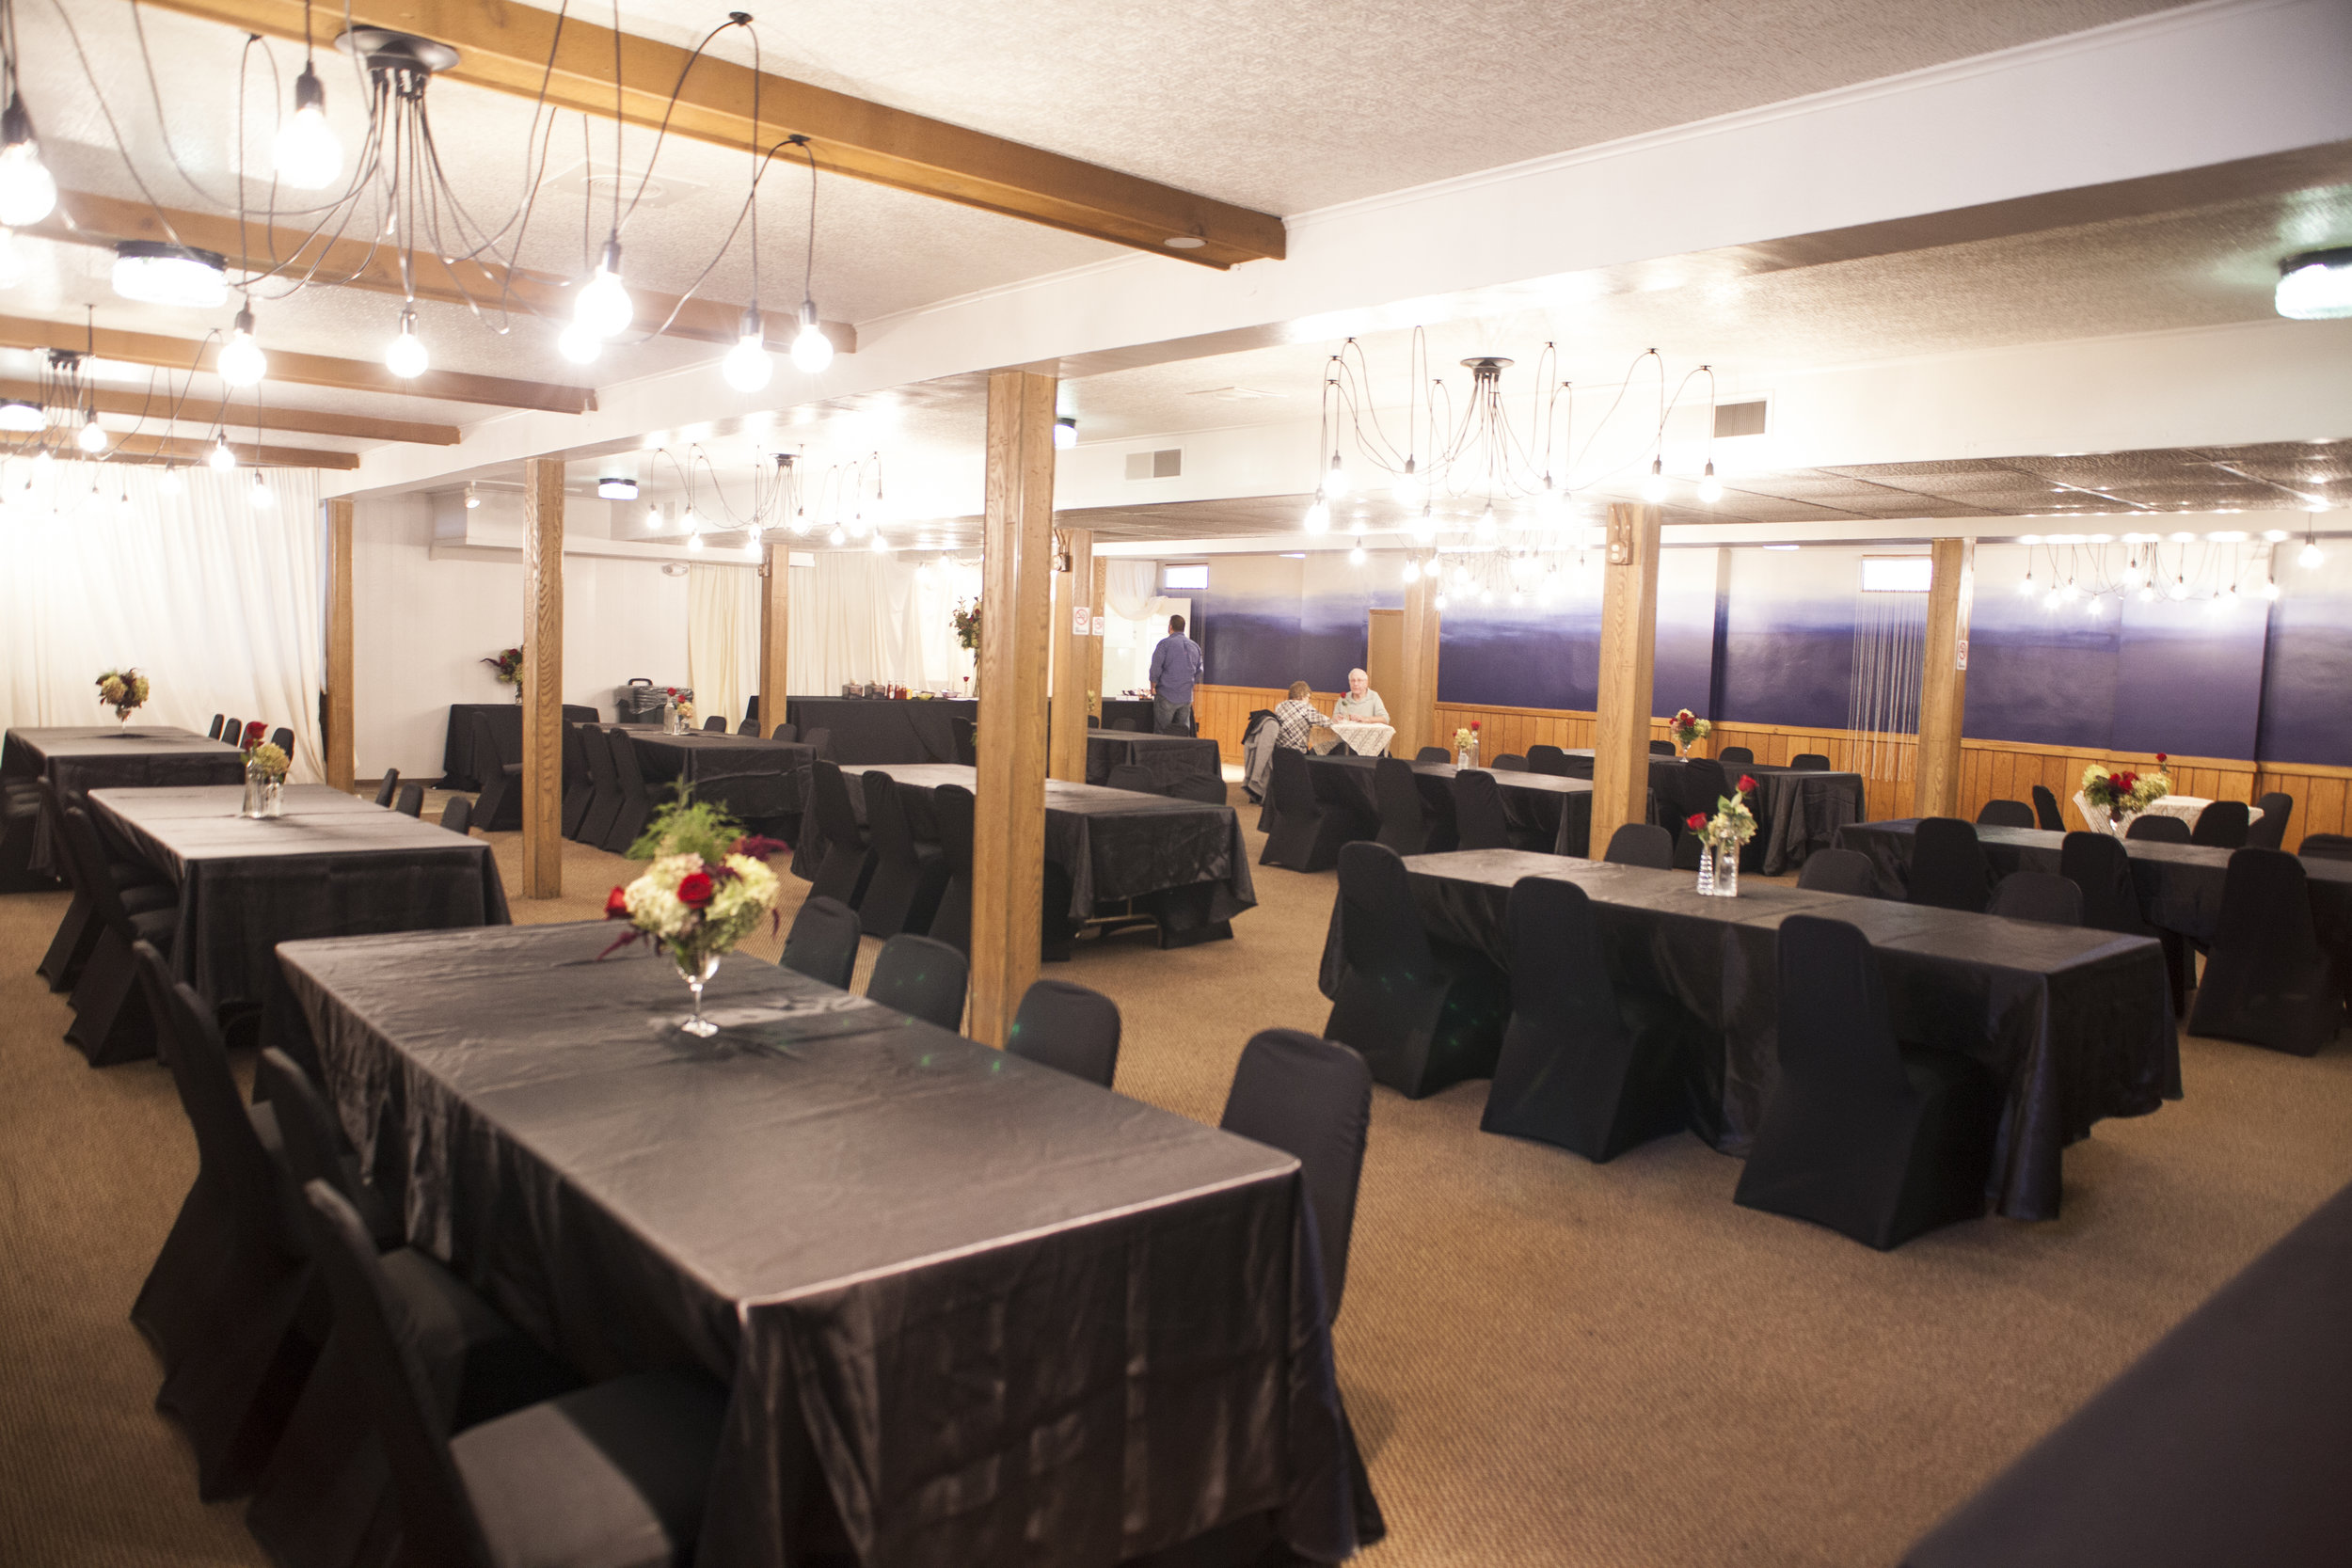 DINNING ROOM LEVEL 1- SEATED CAPACITY 200  Features: Industrial Tentacle Chandeliers, Ombre Accent Wall, Private Bar & Lounge, Round or long tables, Table Linens, Chair Covers